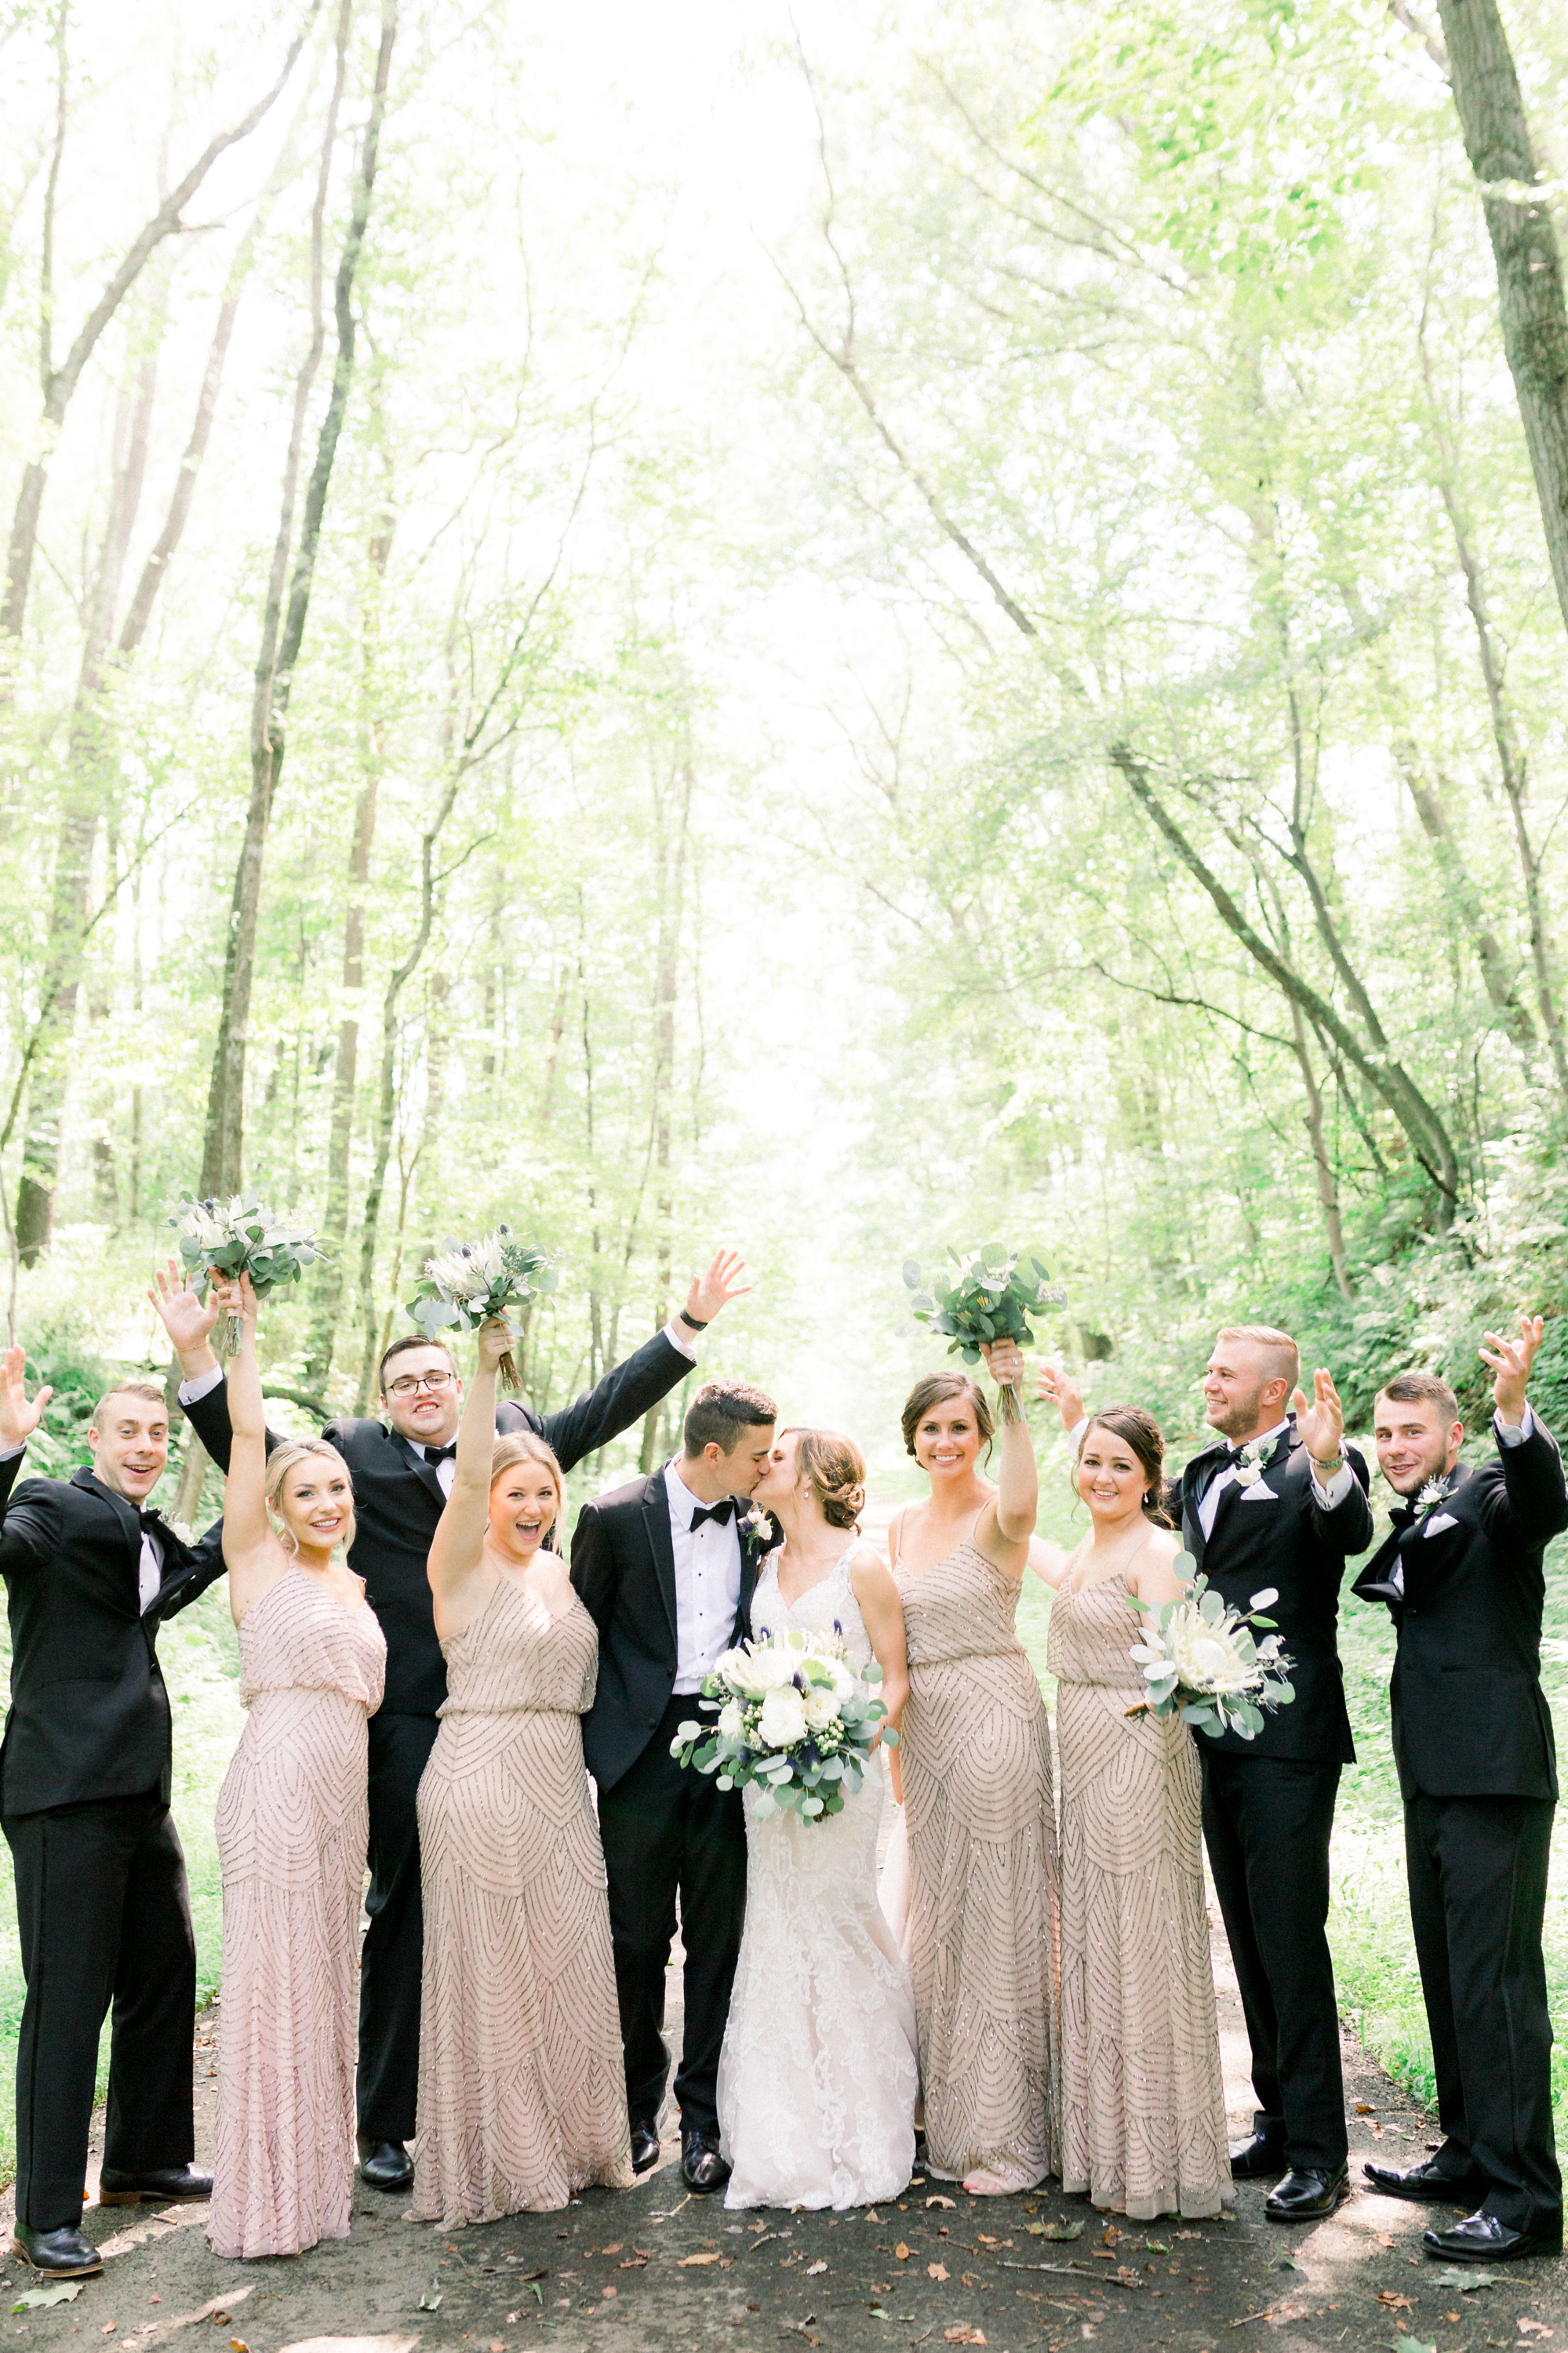 Bride and groom take wedding photos with bridal party for Pittsburgh wedding planned by Exhale Events. Find more wedding inspiration at exhale-events.com!